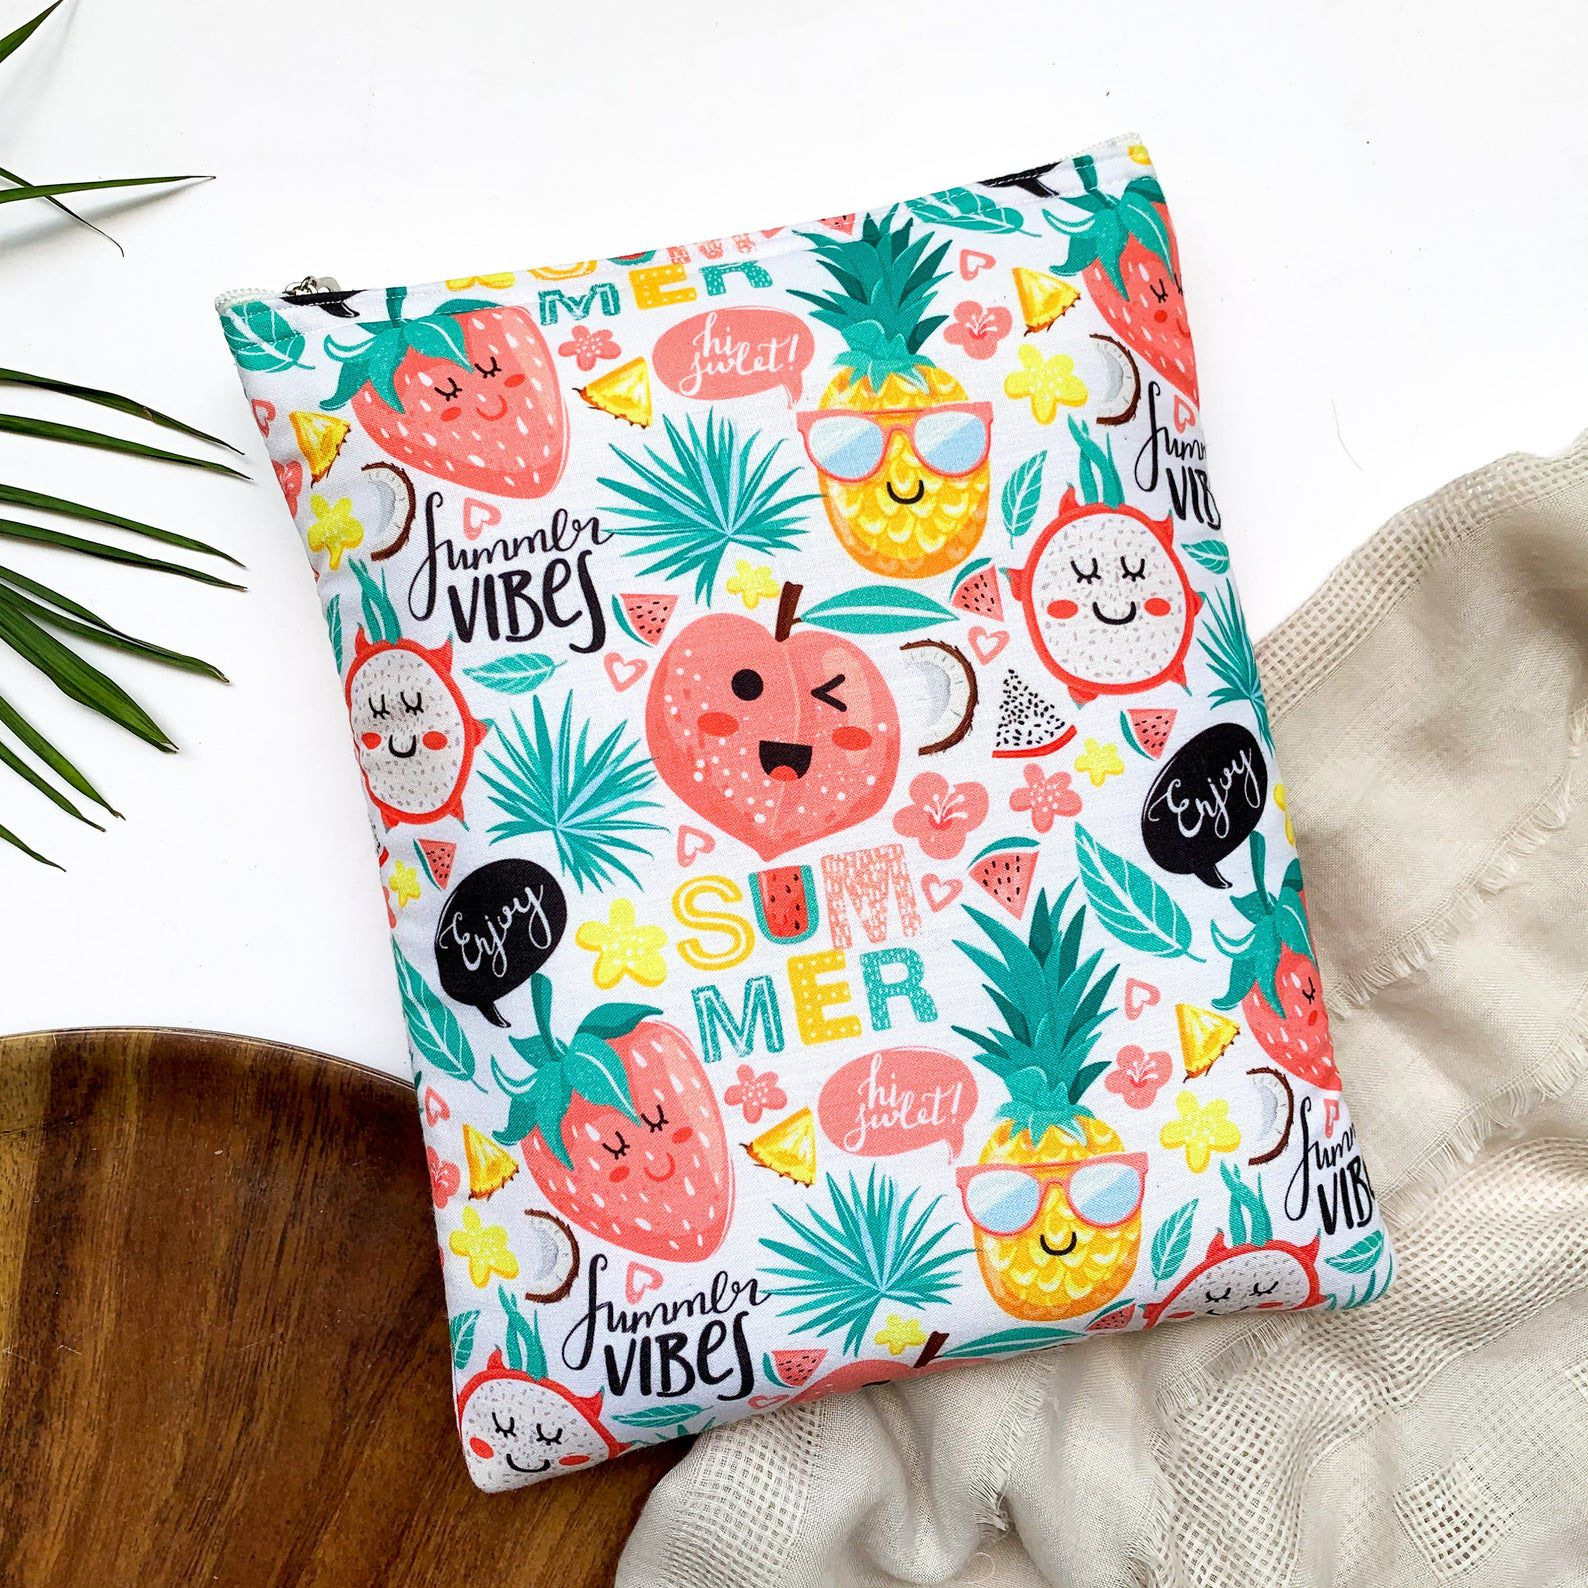 A colourful book sleeve with a white background and a pattern of fruits with happy facial expressions (strawberries, pineapples, watermelonds, etc).